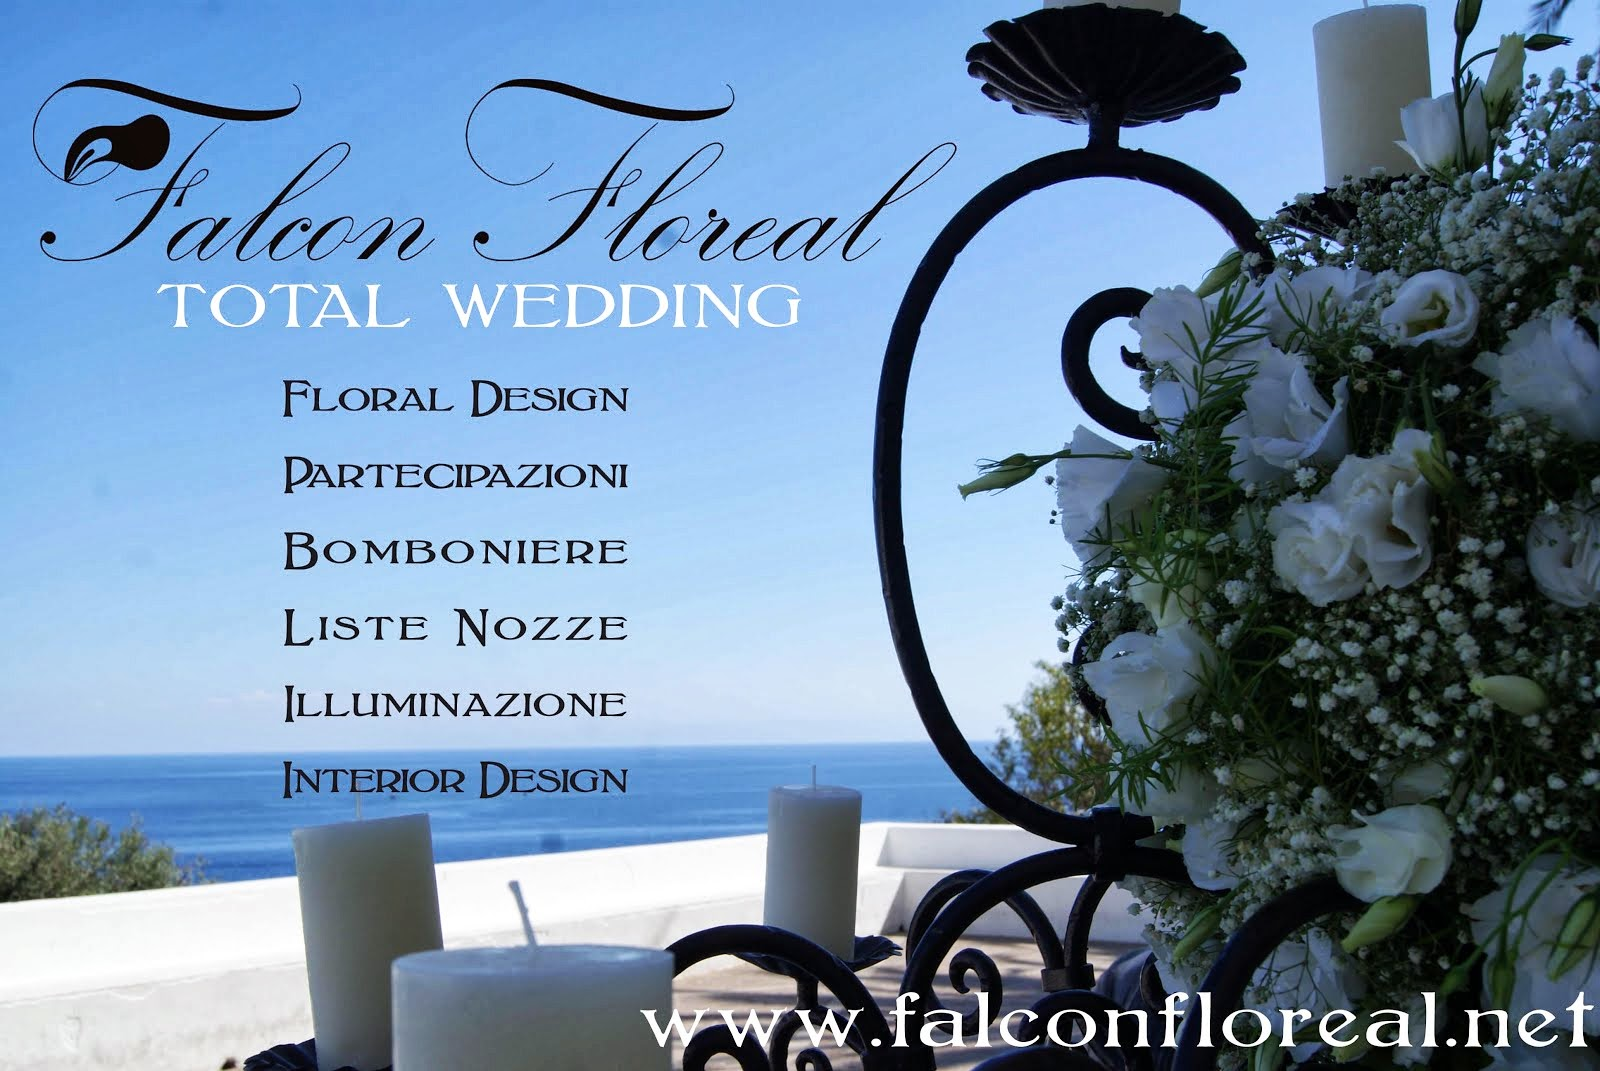 FALCON FLOREAL – TOTAL WEDDING